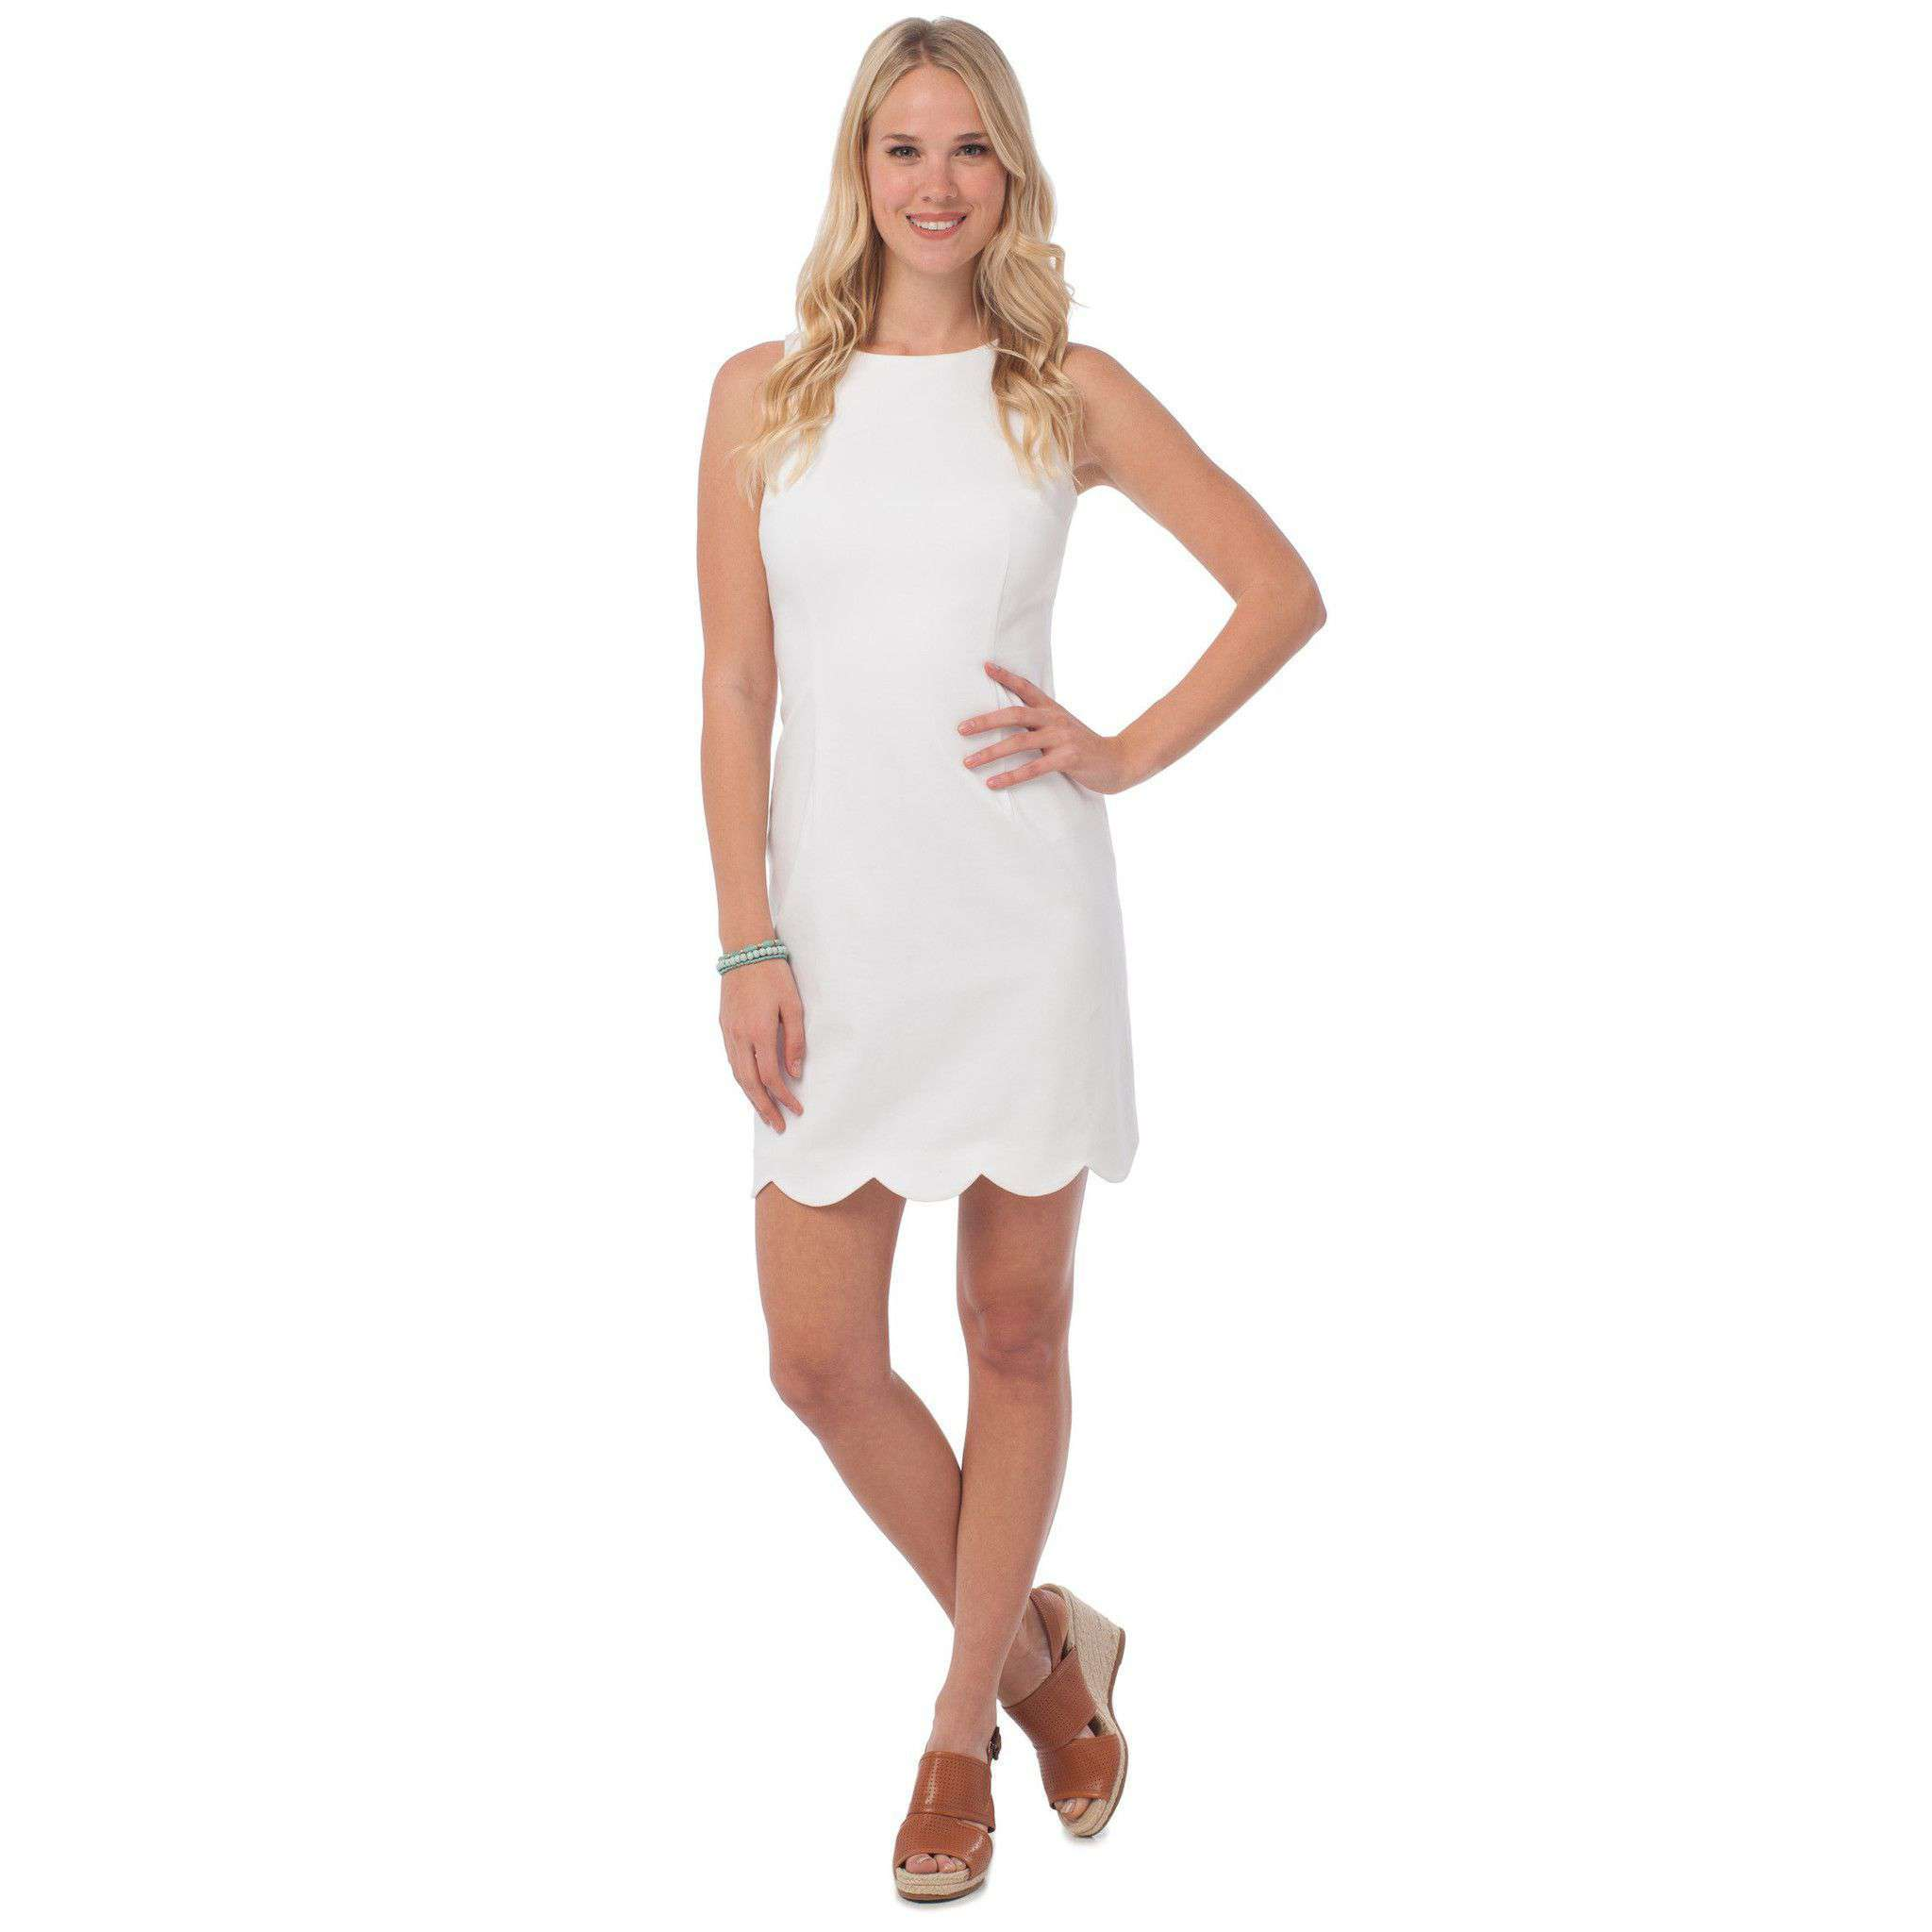 Dresses - Charleston Scallop Dress In White By Southern Tide